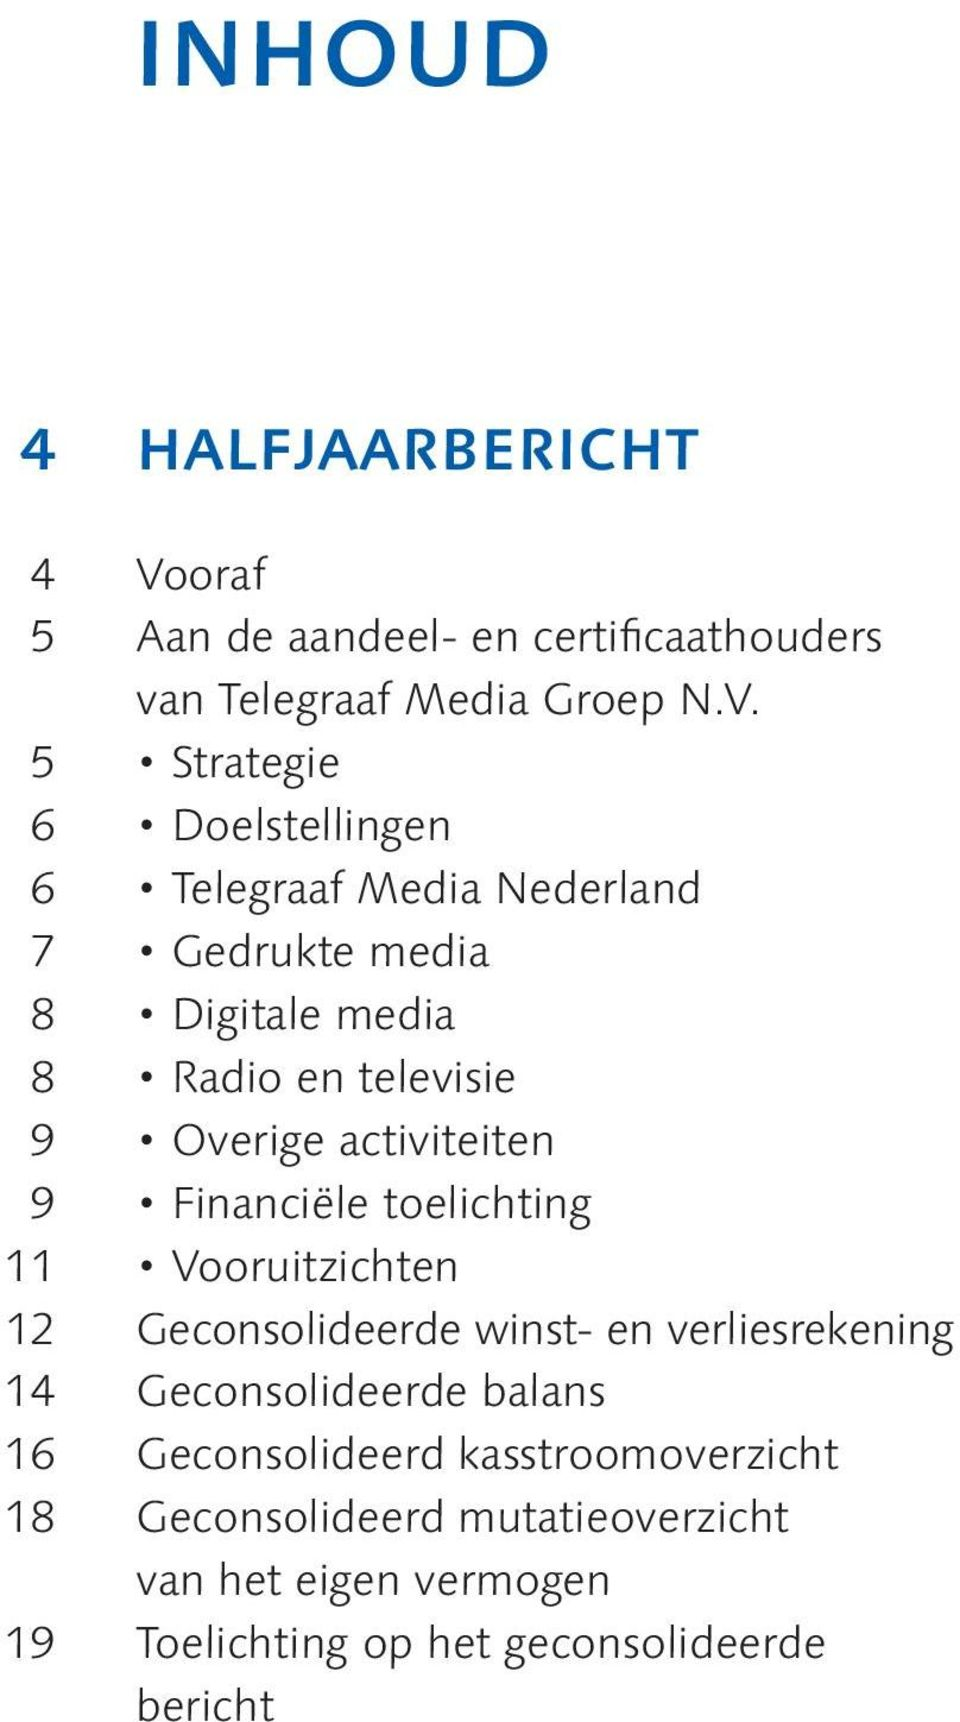 5 Strategie 6 Doelstellingen 6 Telegraaf Media Nederland 7 Gedrukte media 8 Digitale media 8 Radio en televisie 9 Overige